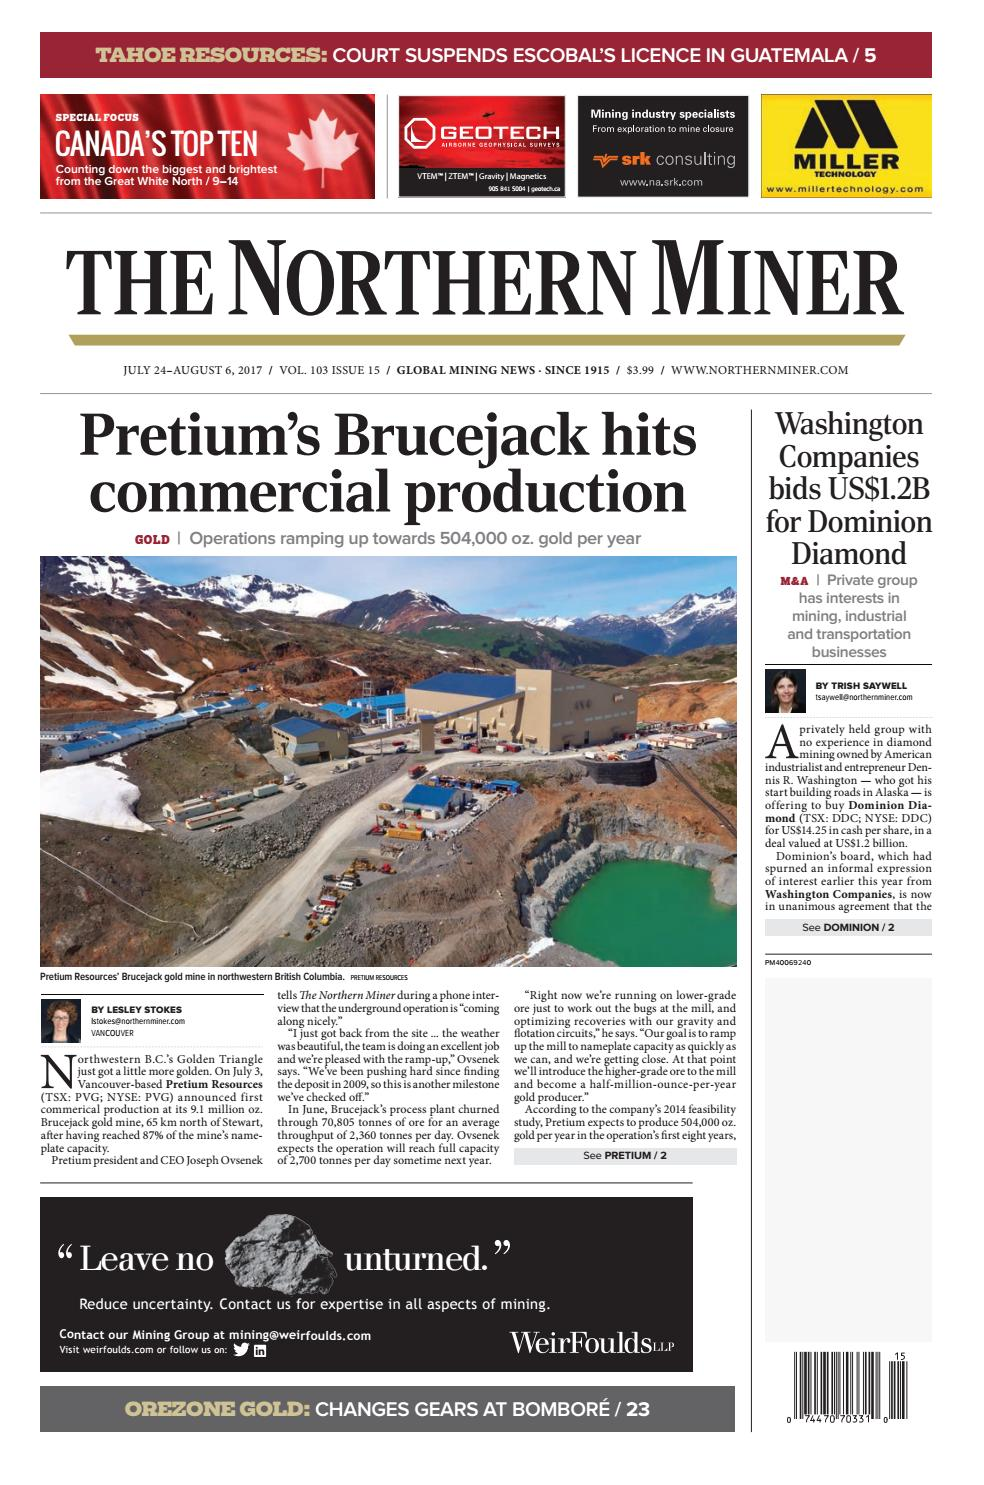 The Northern Miner July 24 2017 Issue by The Northern Miner Group